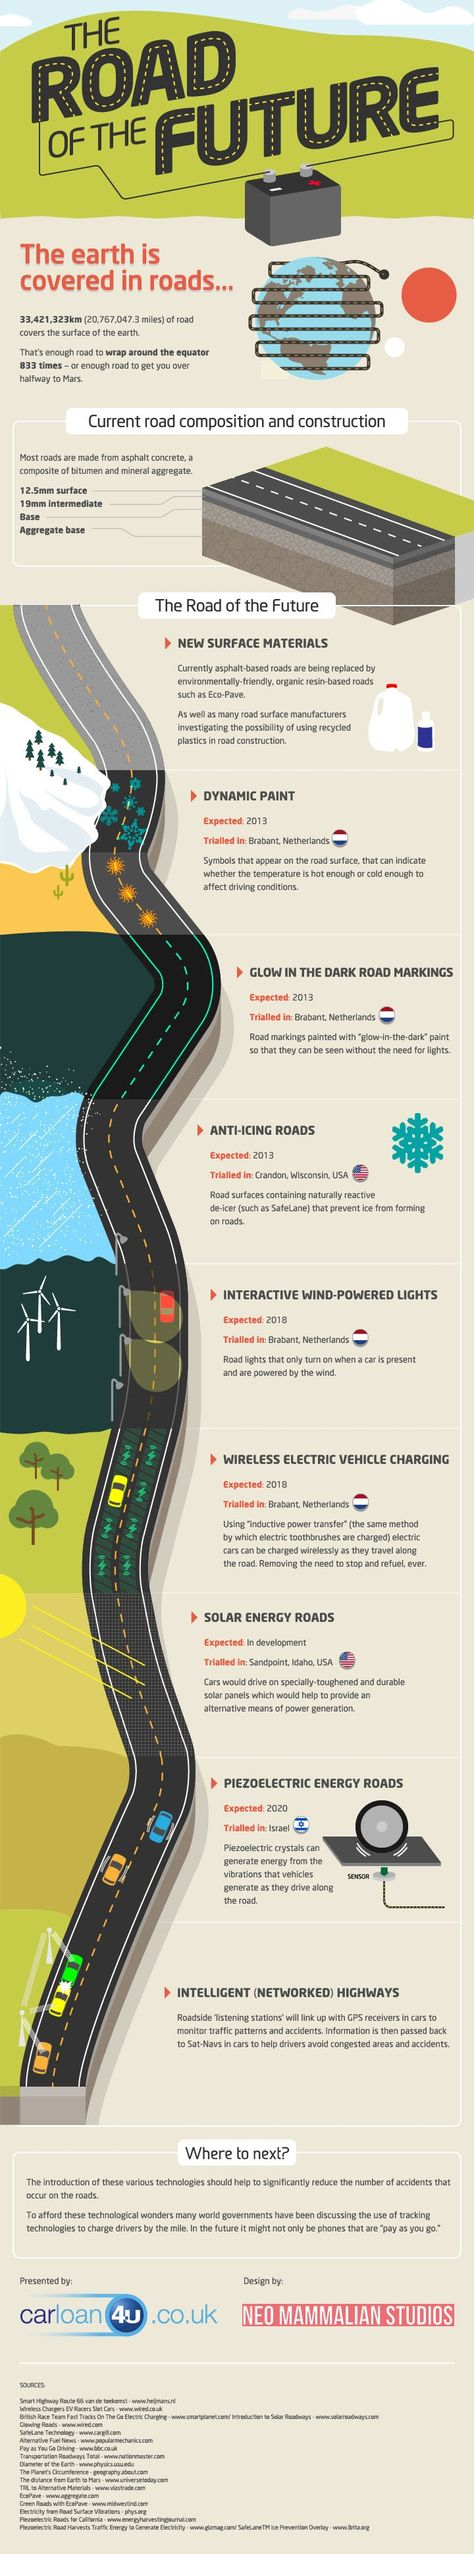 The Road of the Future [INFOGRAPHIC] - via Living green Magazine 1-7-2013